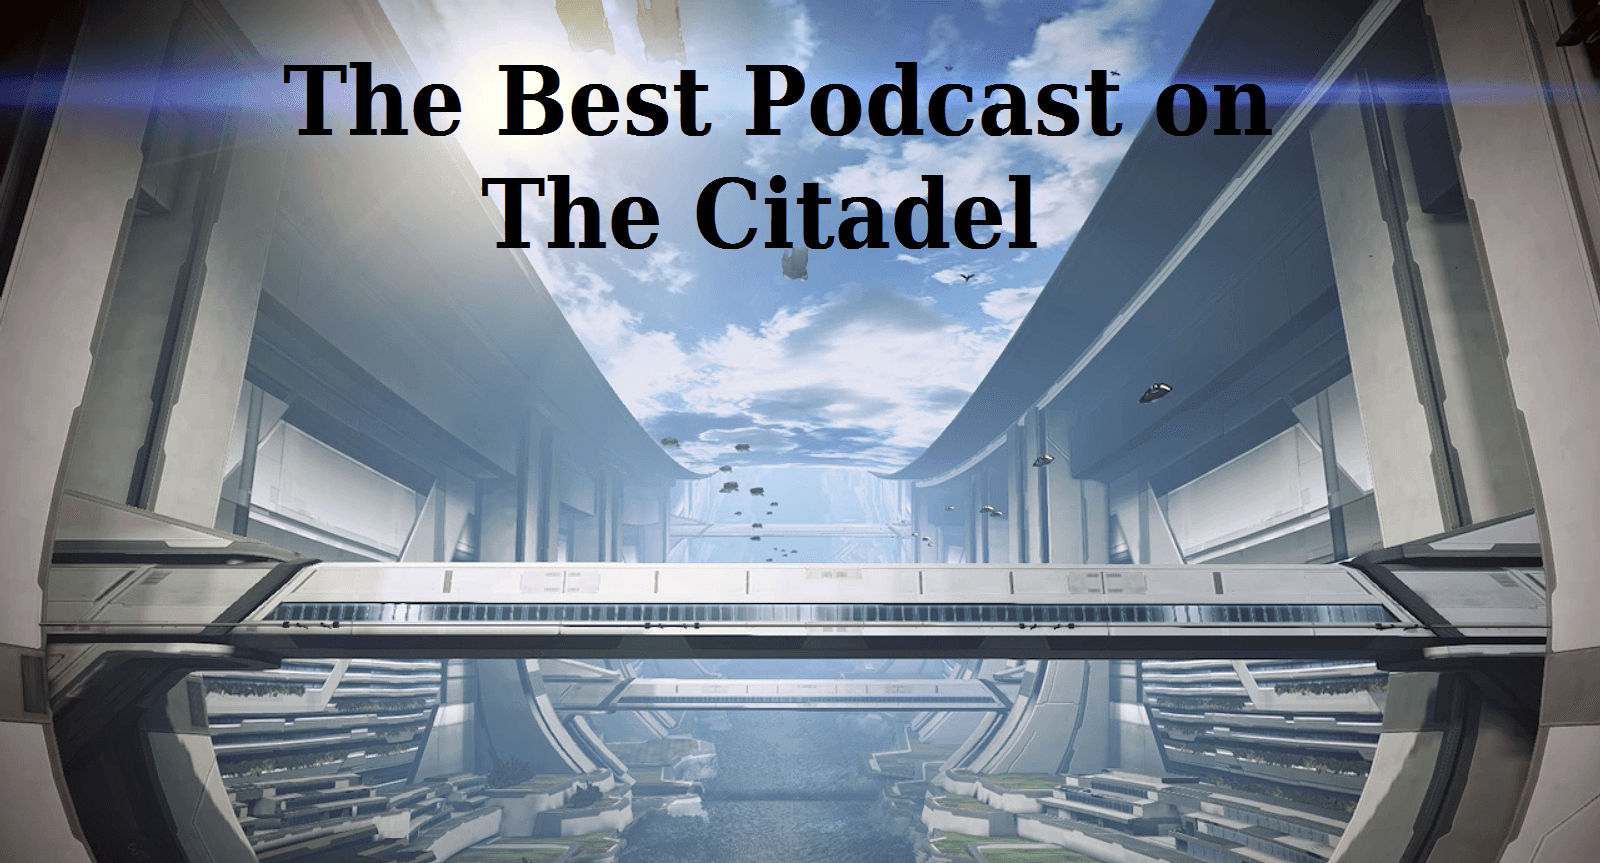 The Best Podcast on the Citadel, Episode 17